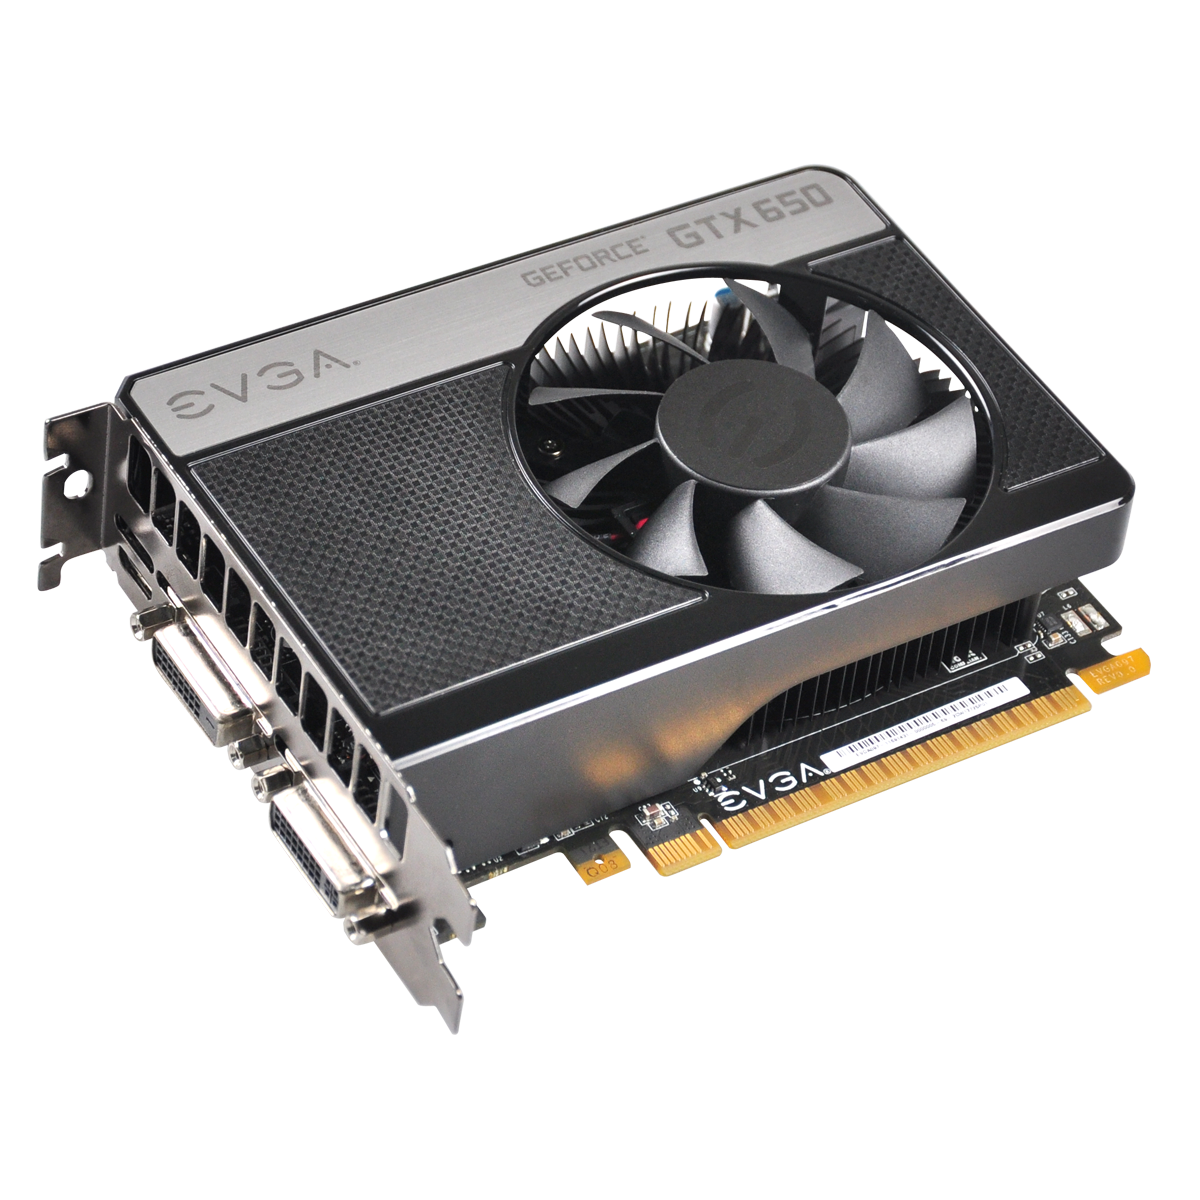 Kepler For Every Gamer: Meet The New GeForce GTX 660 & 650 | GeForce